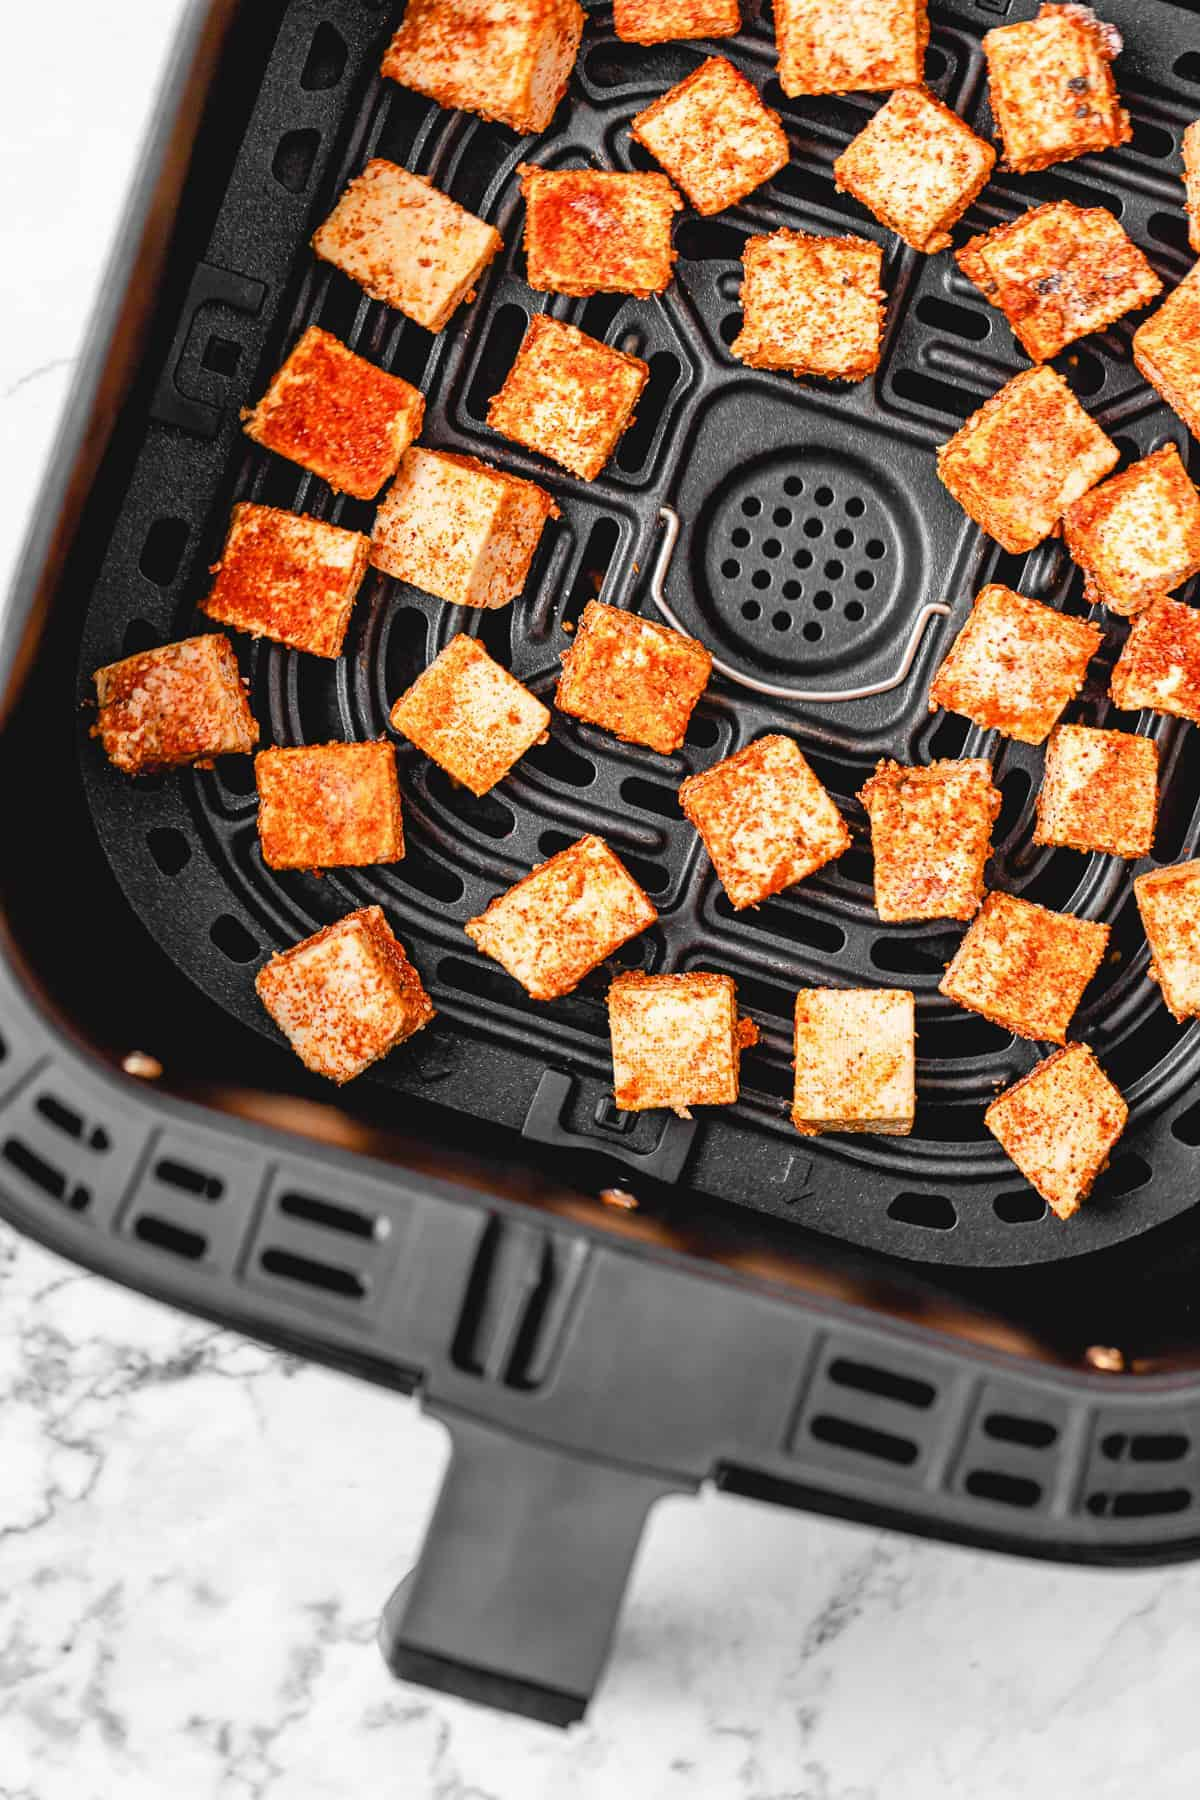 seasoned tofu cubes unbaked in an air fryer tray